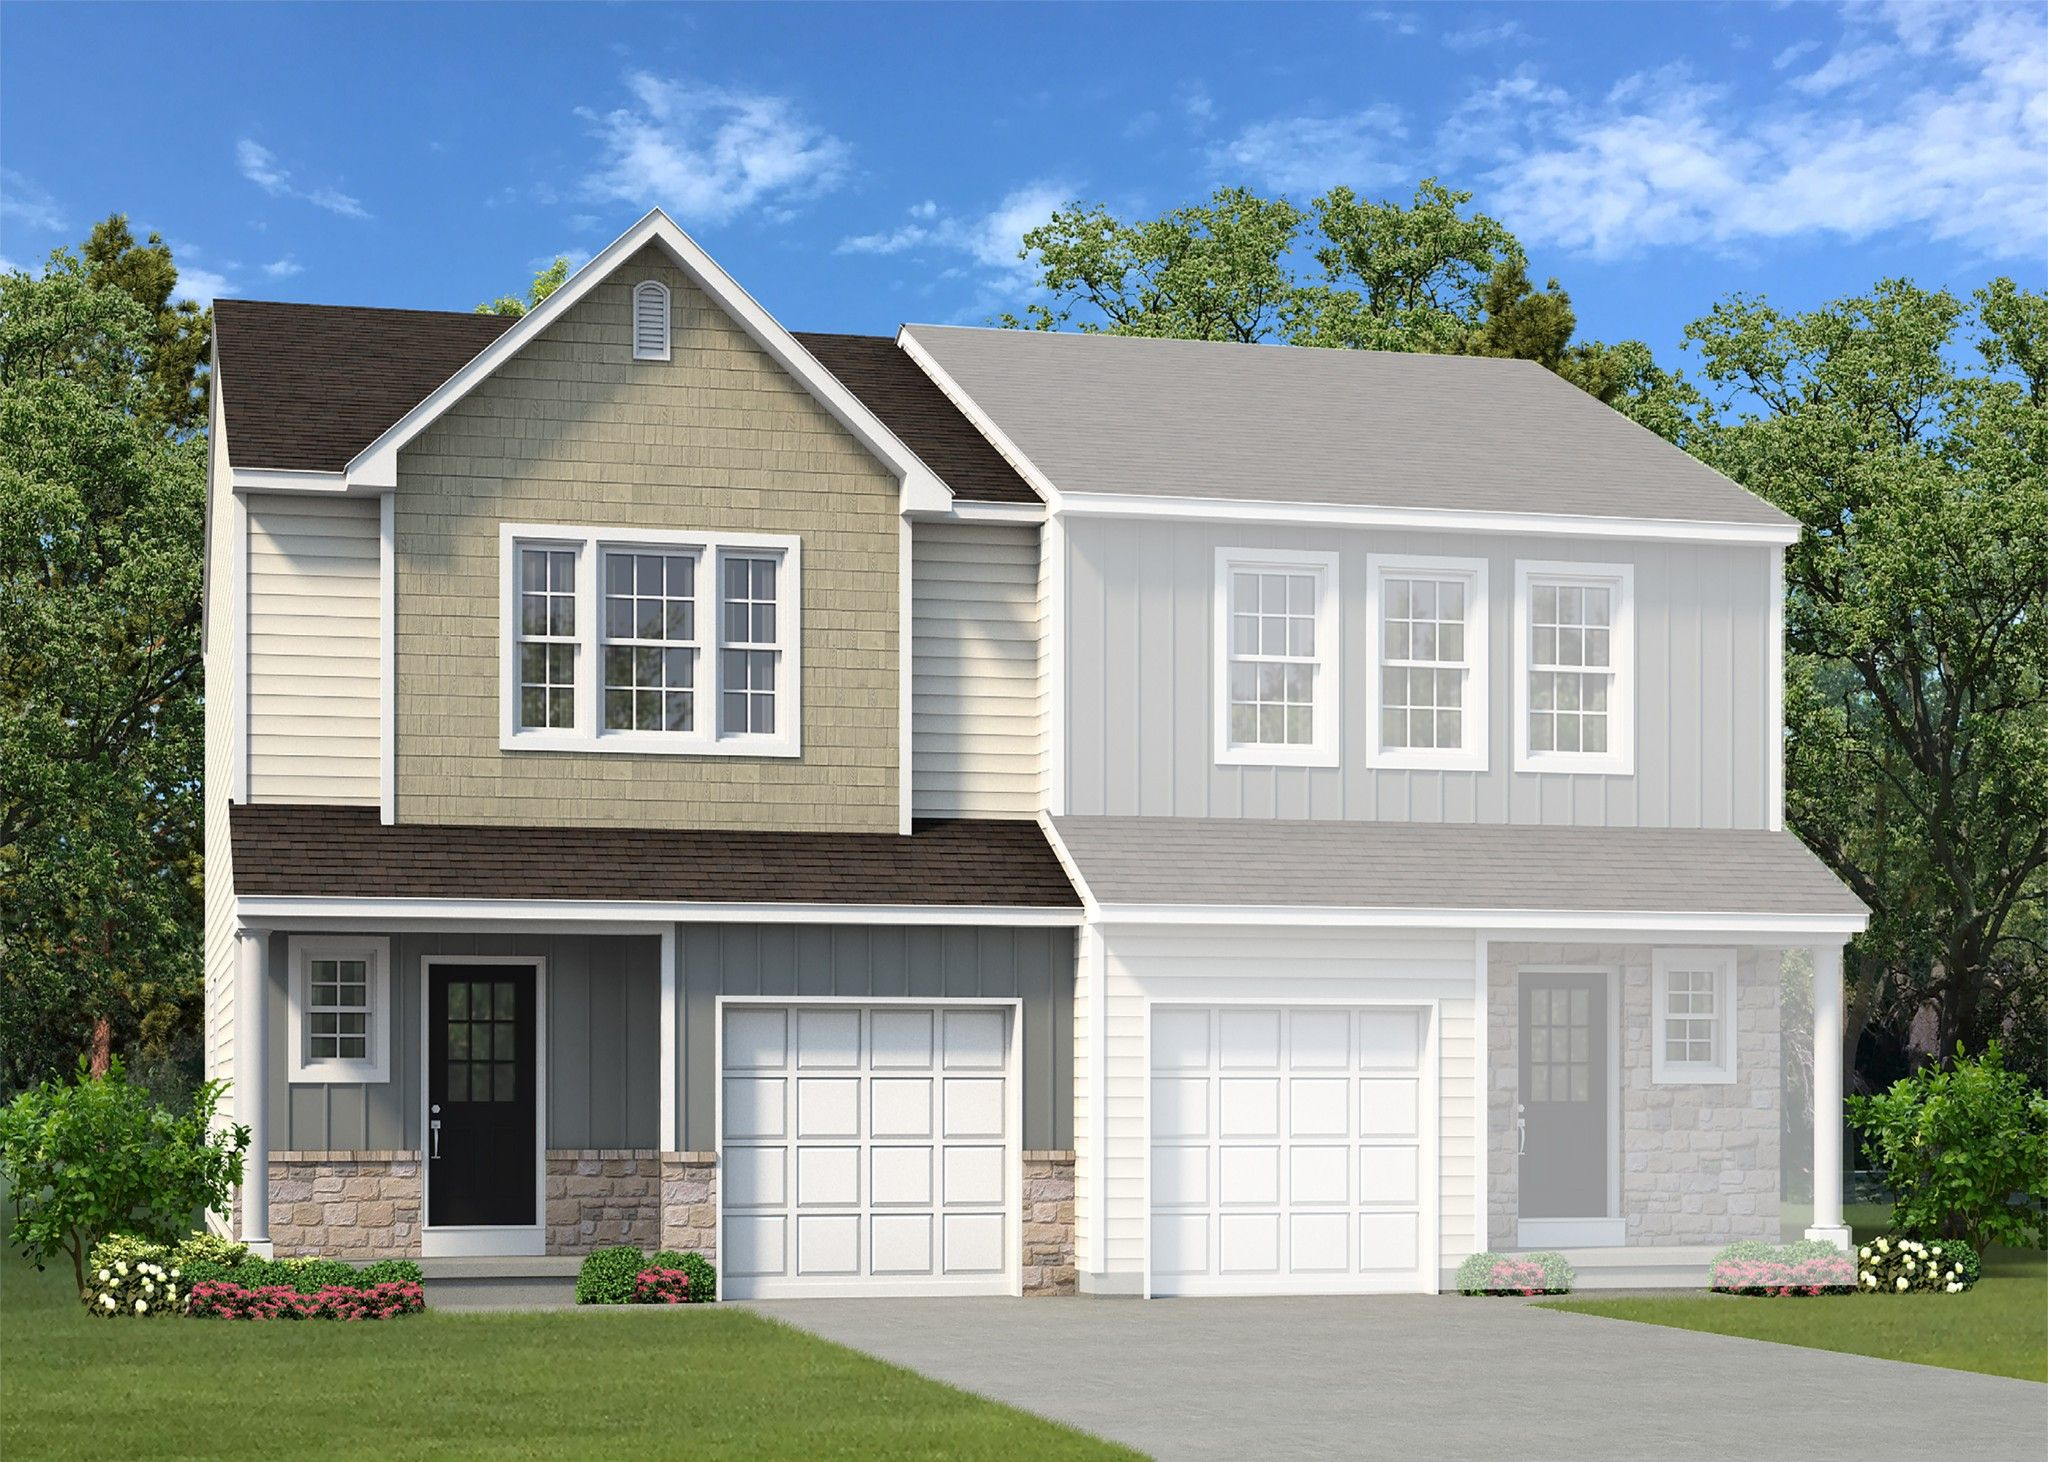 Exterior featured in the Towns at Woods Edge Cottage By Tuskes Homes in Scranton-Wilkes-Barre, PA